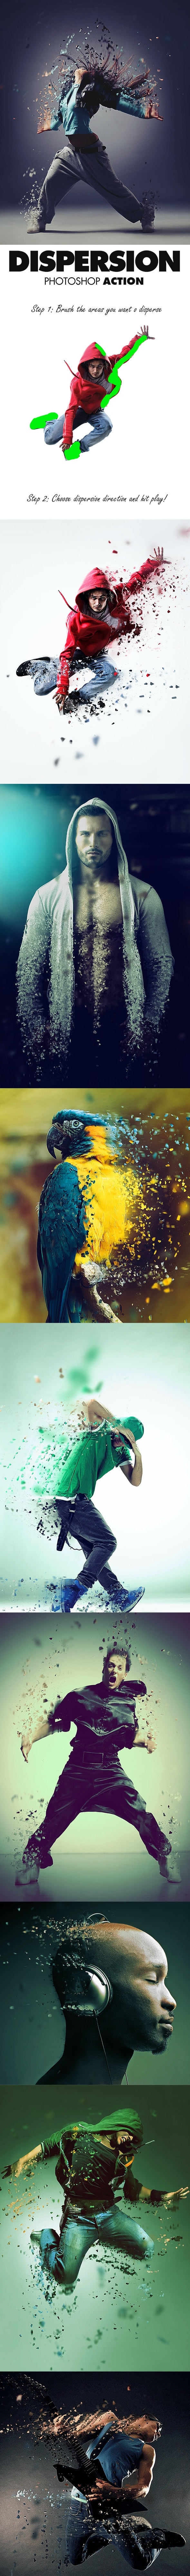 Dispersion Photoshop Action - Photo Effects Actions